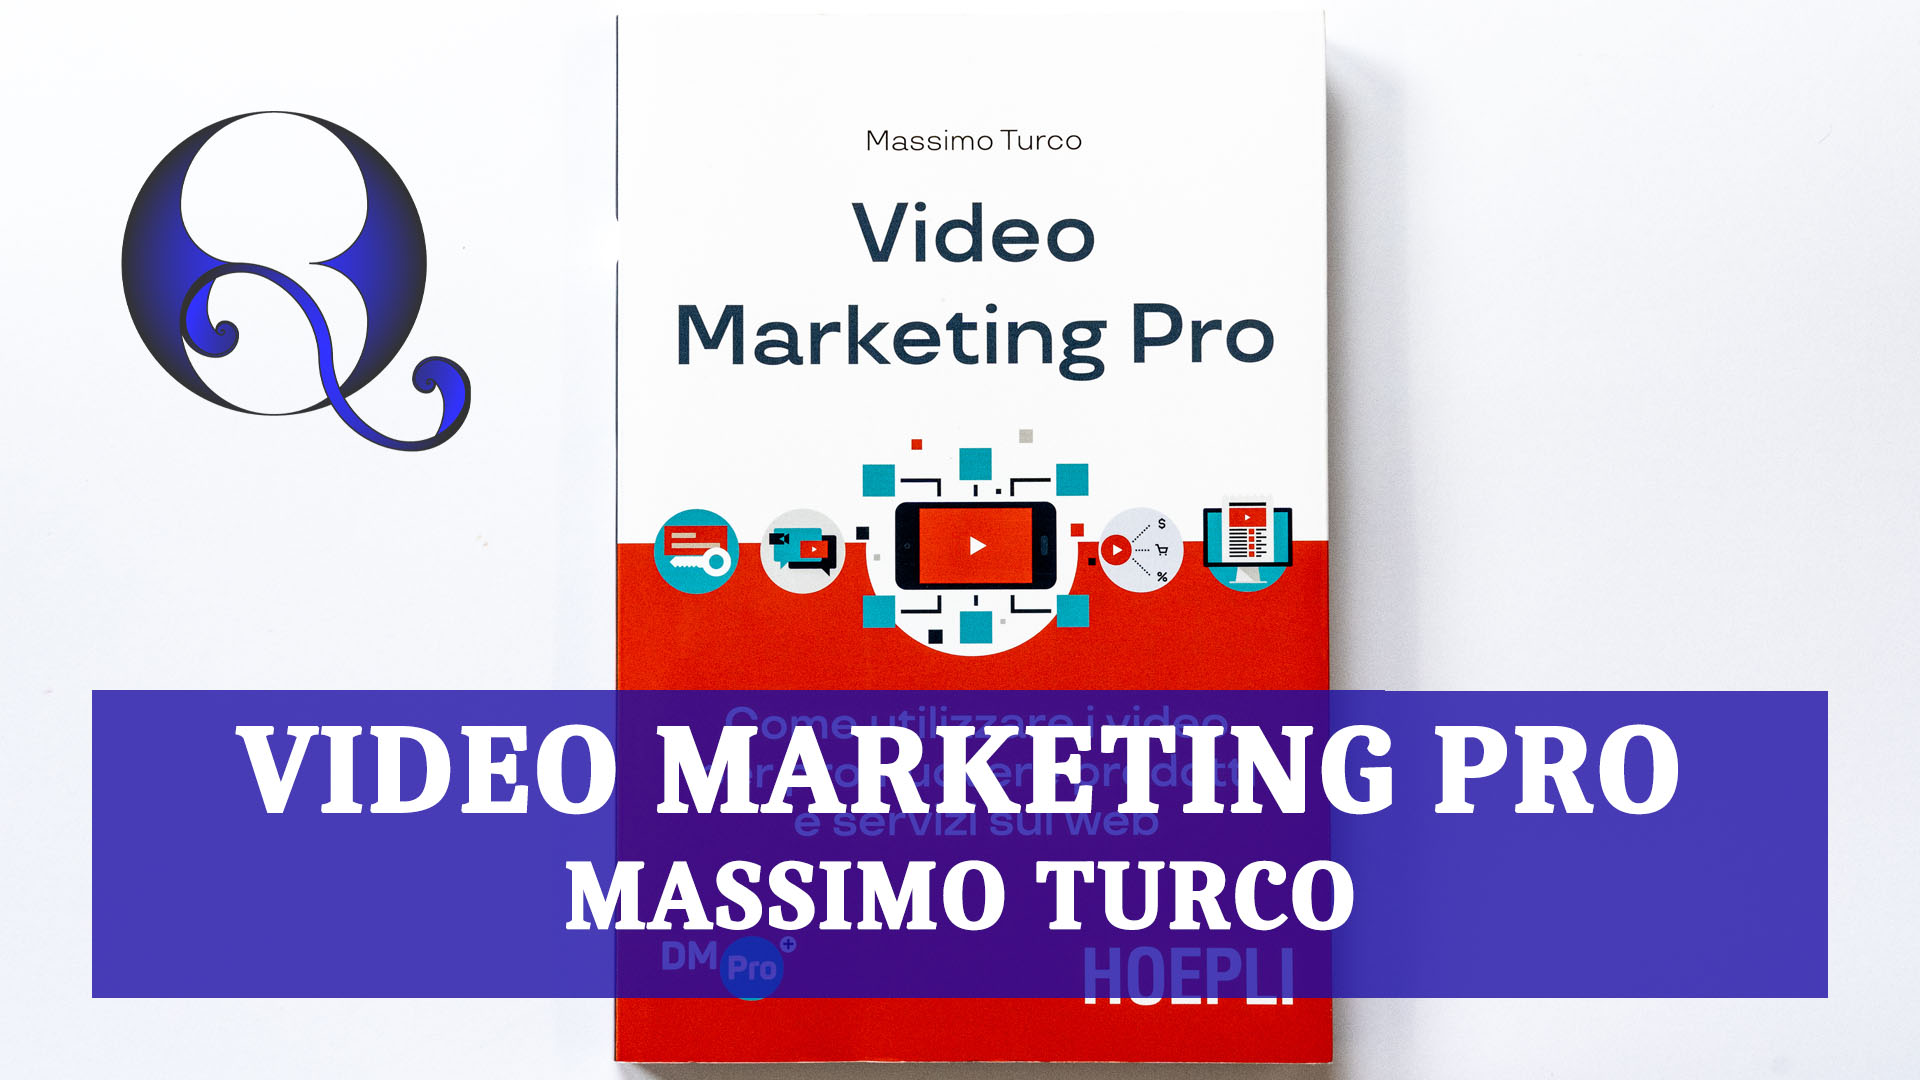 VIDEO MARKETING PRO di MASSIMO TURCO: relazione libro